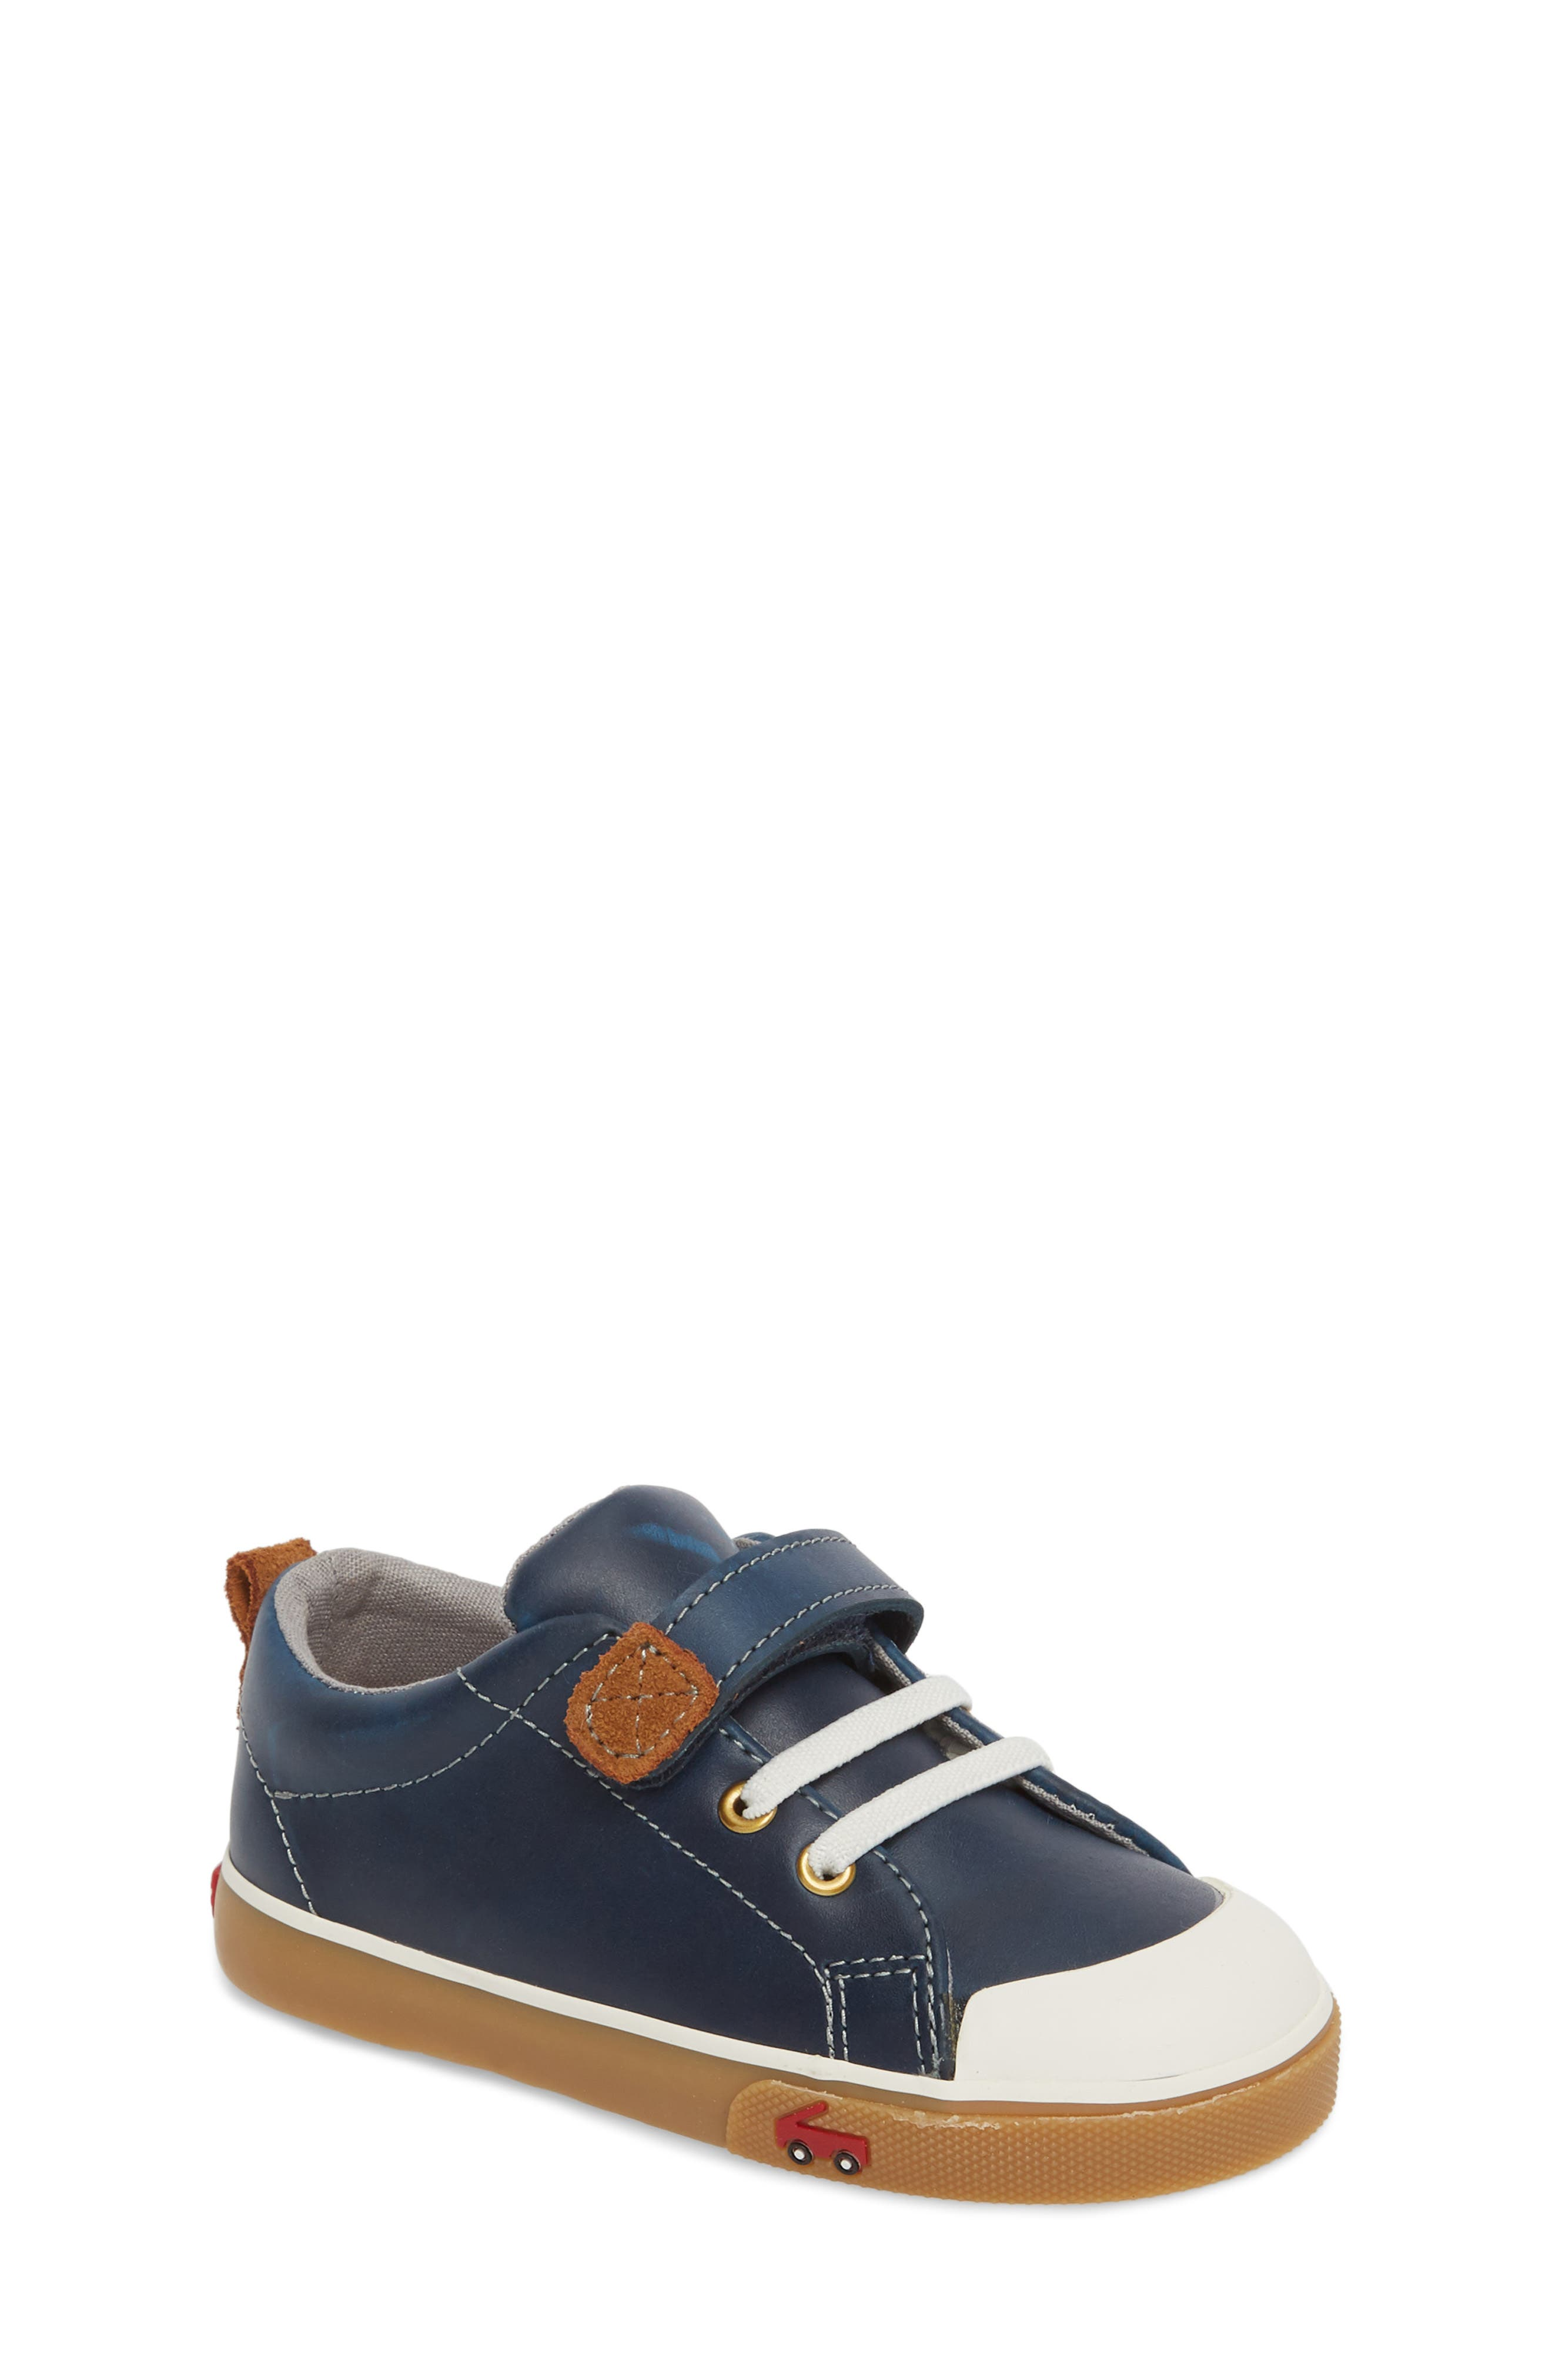 Stevie II Sneaker,                             Main thumbnail 1, color,                             Navy Leather